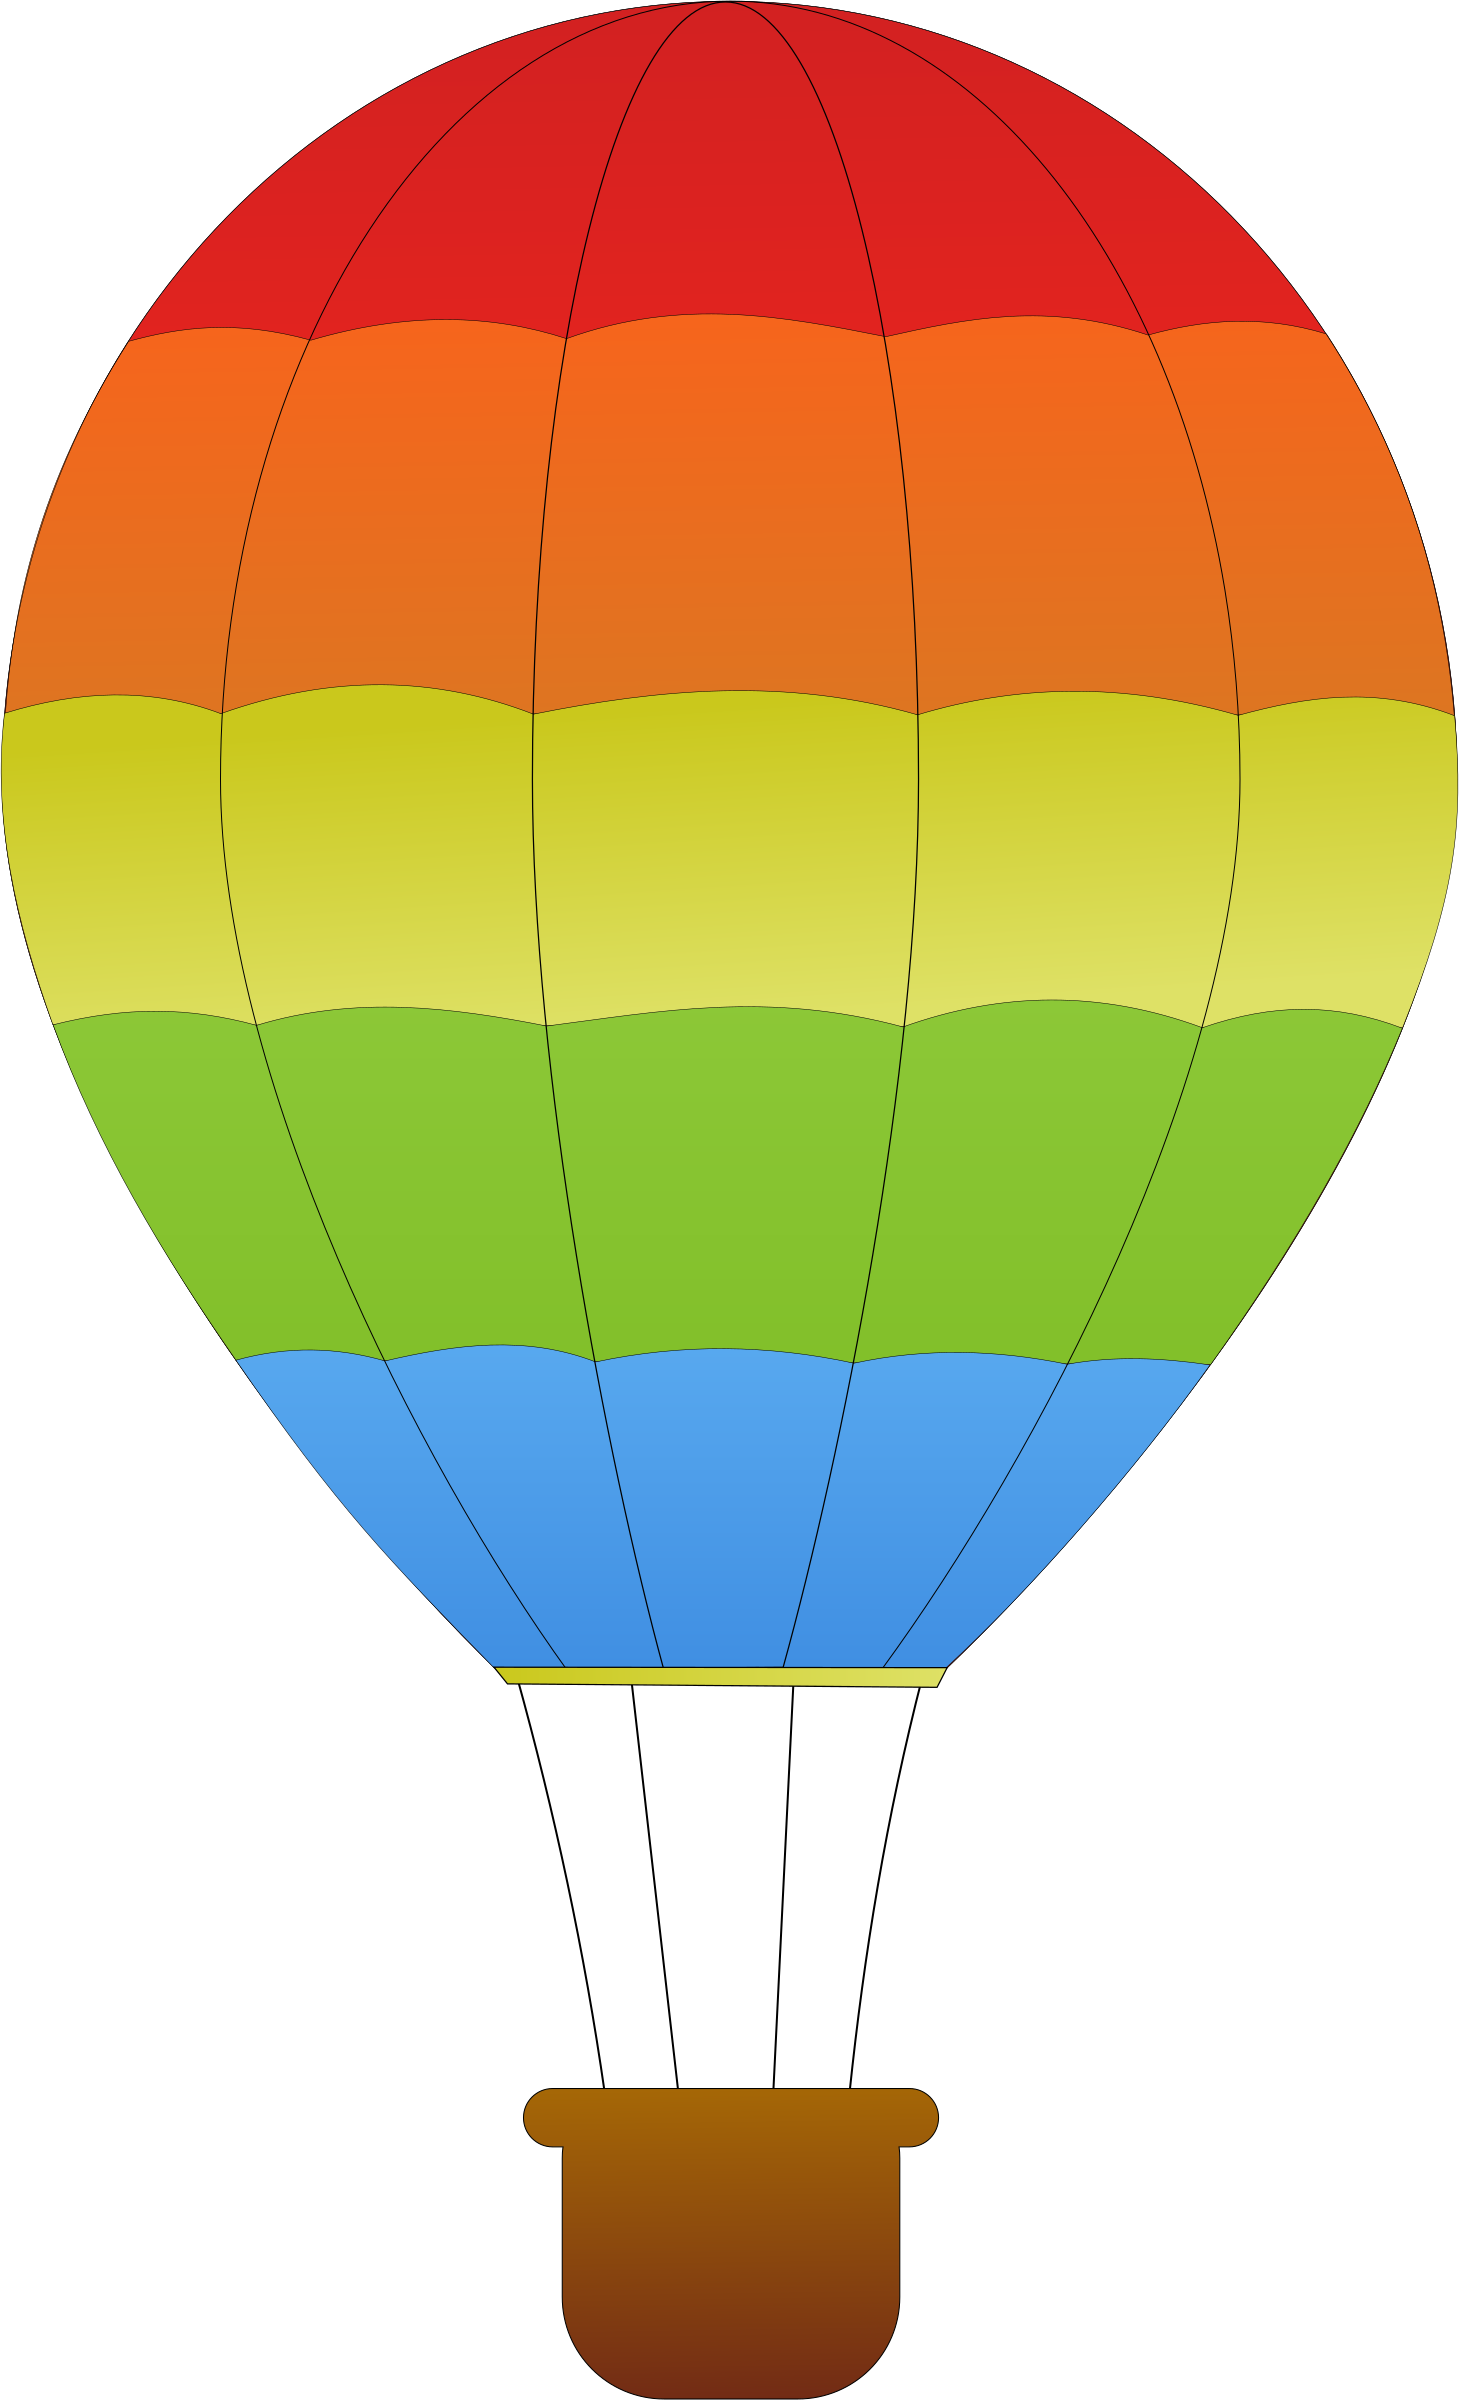 Horizontal Striped Hot Air Balloons by maidis